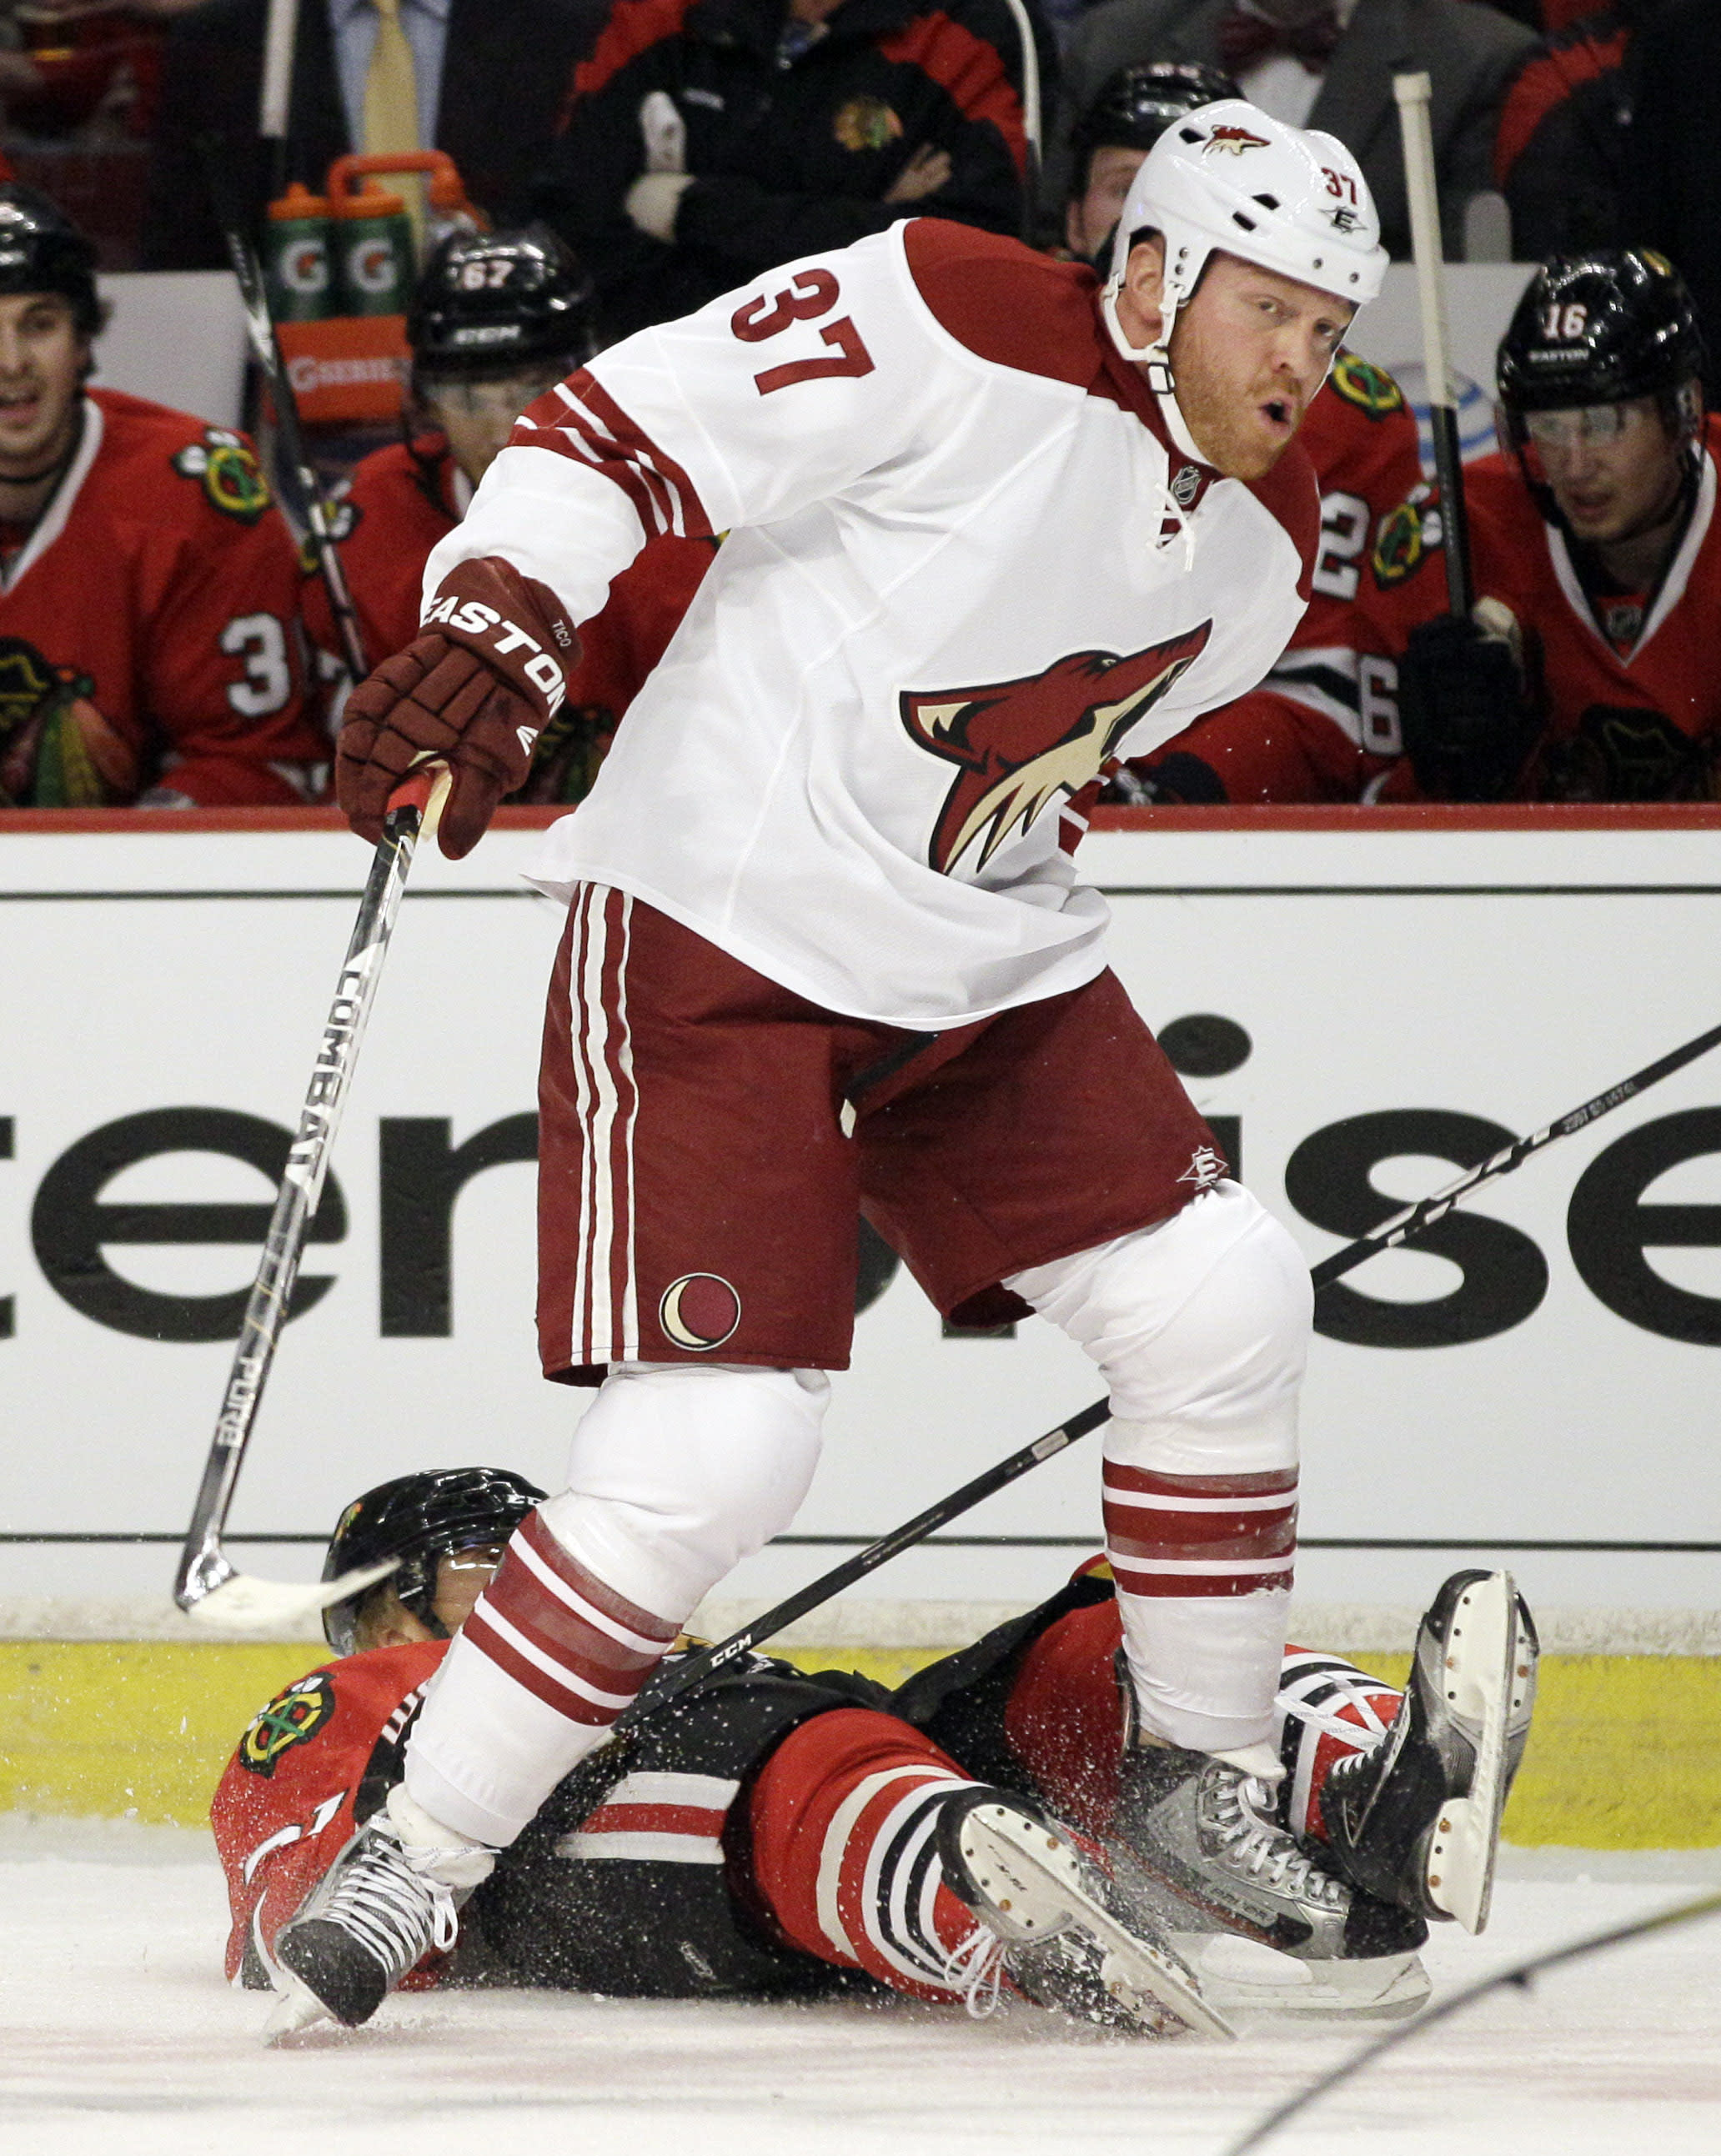 CORRECTS HOSSA FROM SLOVAKIA, NOT RUSSIA - Chicago Blackhawks' Marian Hossa (81) of Slovakia, falls down after hit from Phoenix Coyotes' Raffi Torres (37) during the first period of Game 3 of an NHL hockey Stanley Cup first-round playoff series in Chicago, Tuesday, April 17, 2012. (AP Photo/Nam Y. Huh)